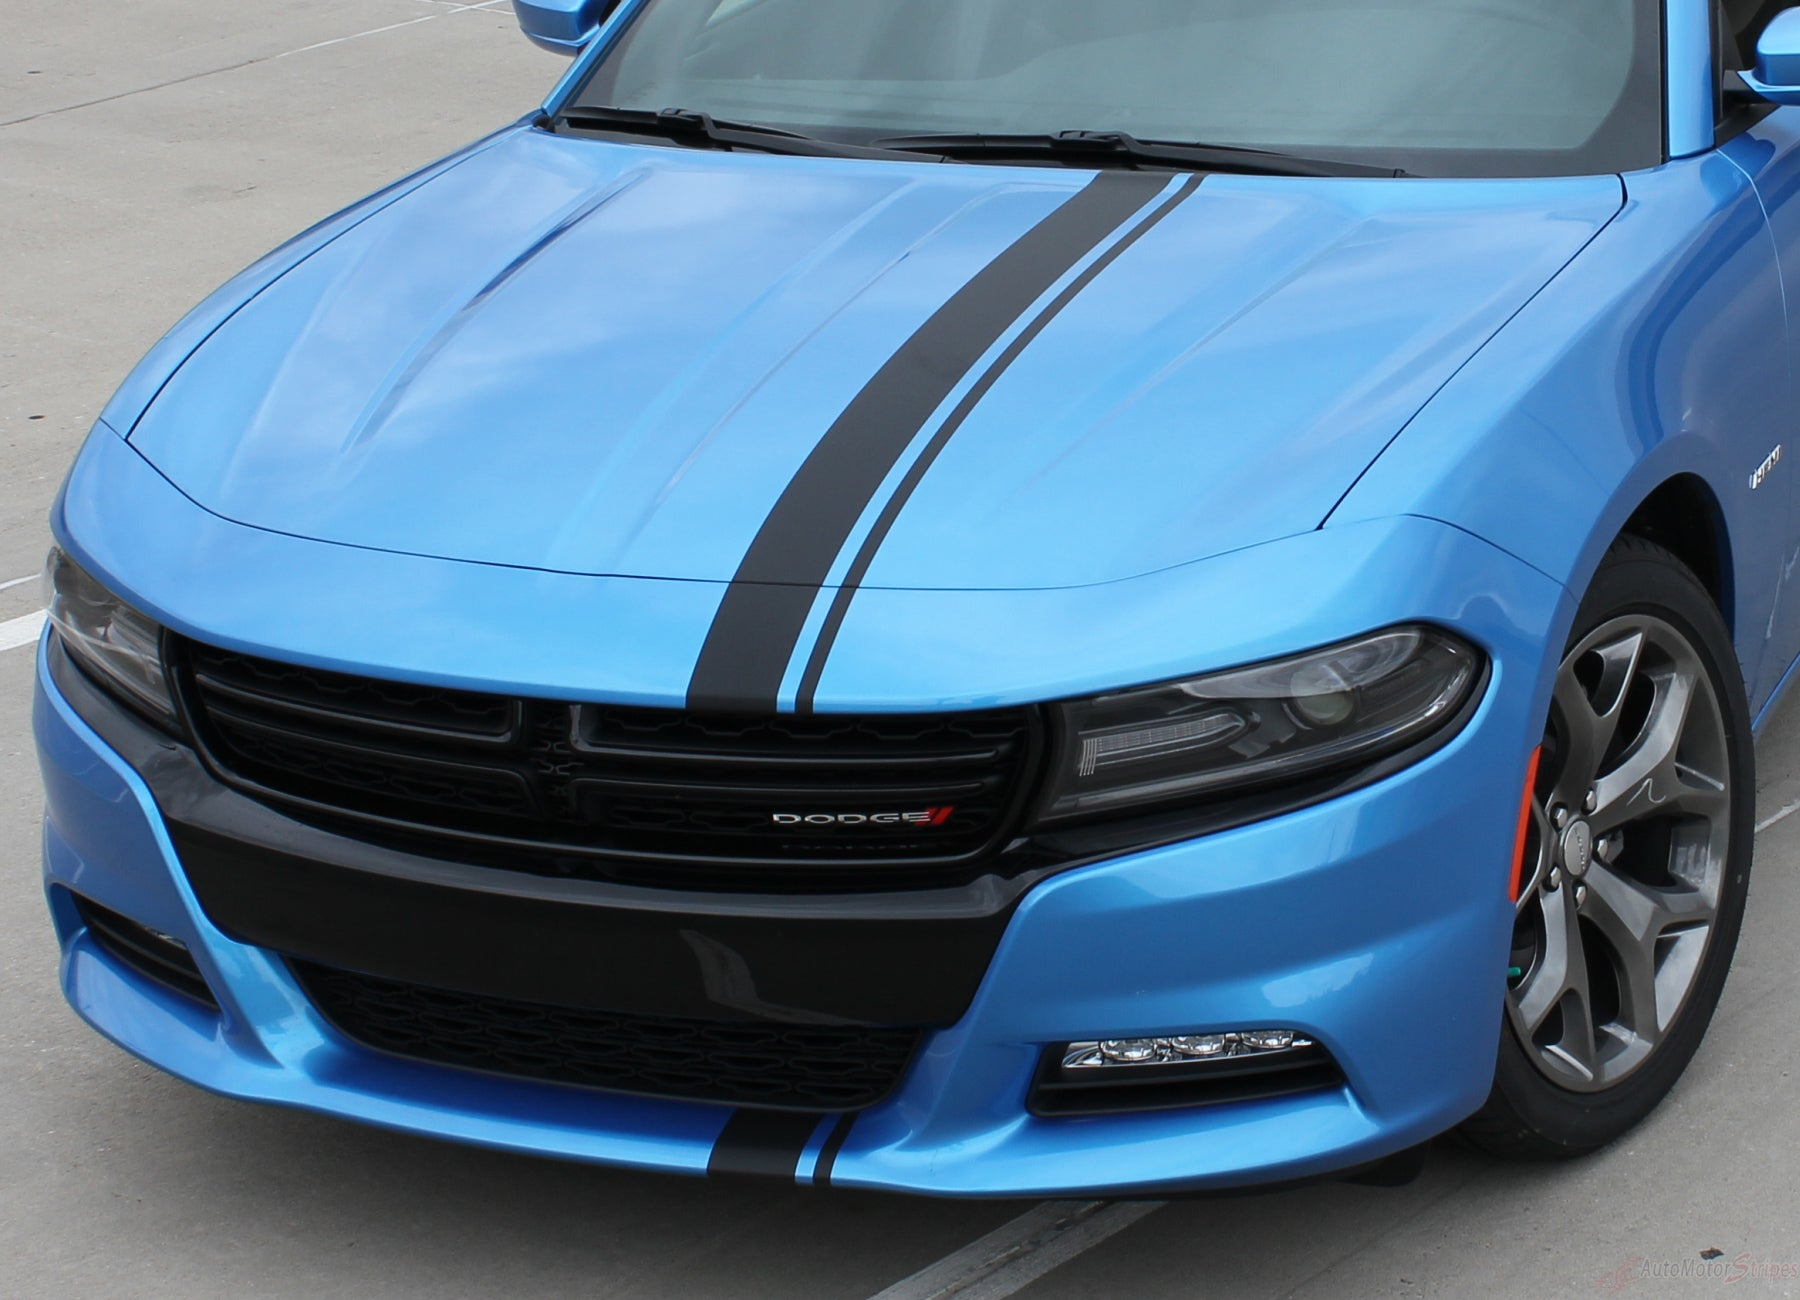 2015 2021 Dodge Charger Hood Stripe E Rally Euro Racing Vinyl Graphics Auto Motor Stripes Decals Vinyl Graphics And 3m Striping Kits